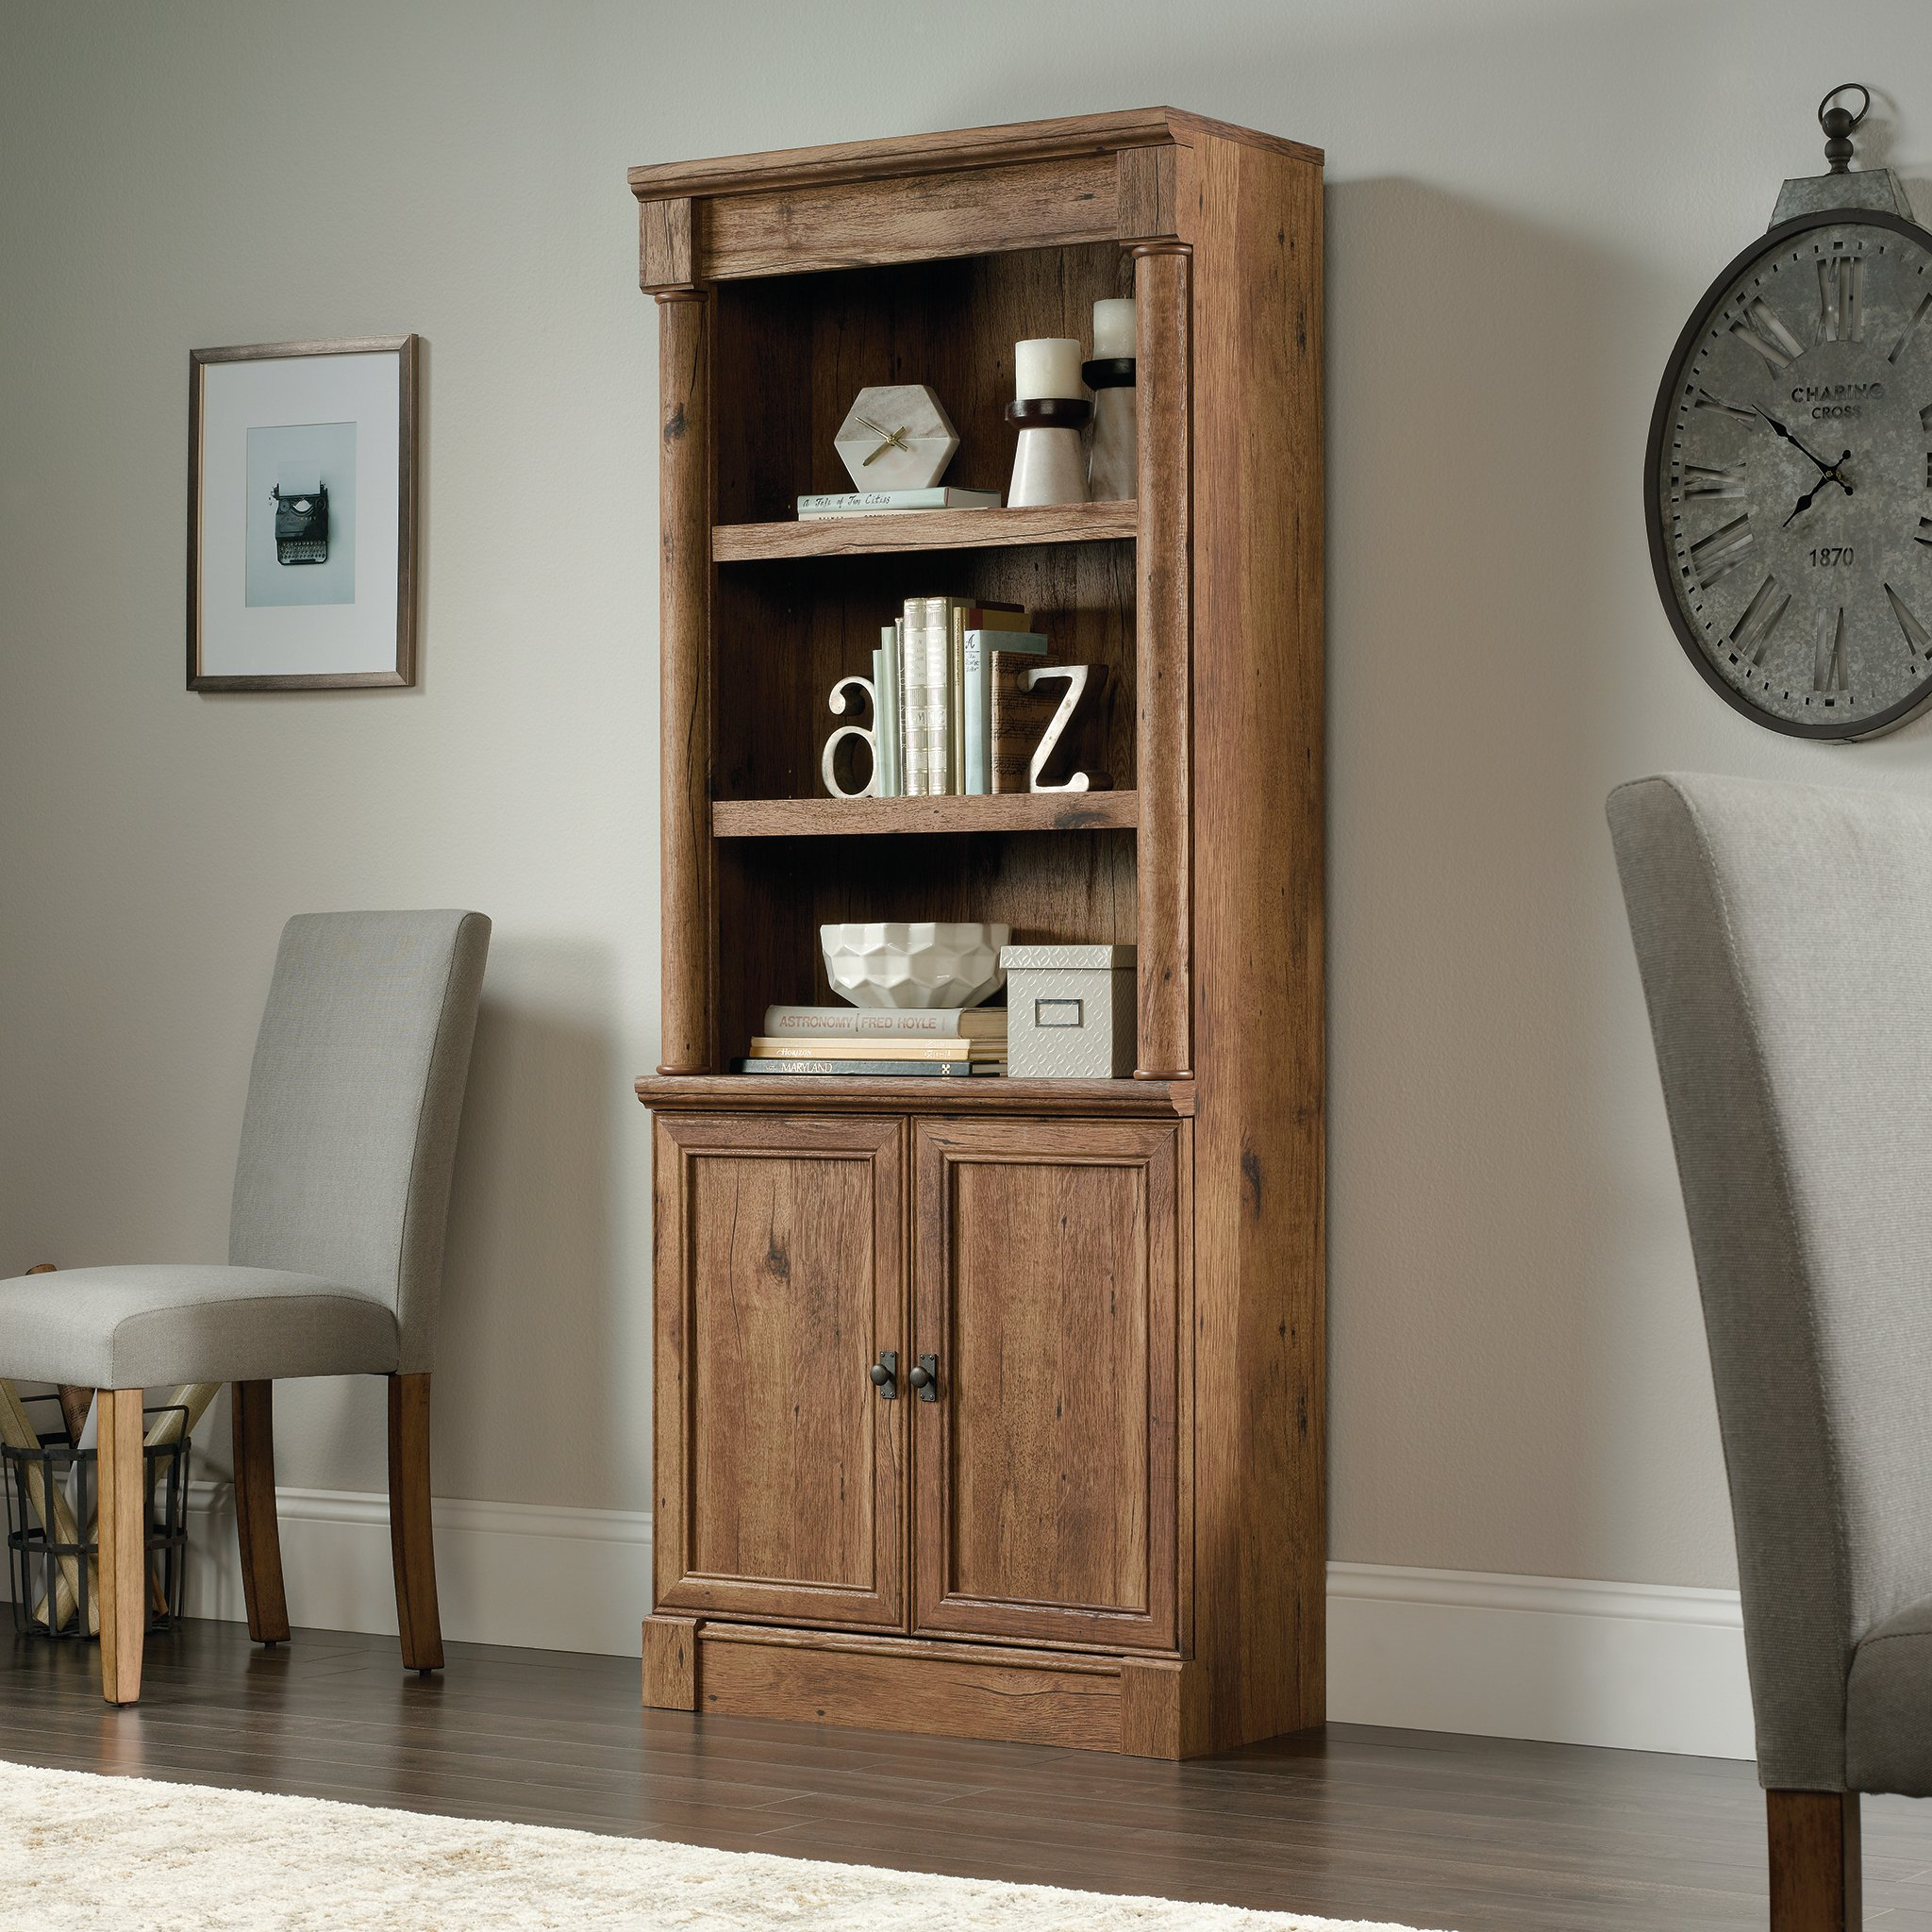 Sauder 420609 Palladia Library with Doors, L: 29.37'' x W: 13.90'' x H: 71.85'', Vintage Oak finish by Sauder (Image #2)